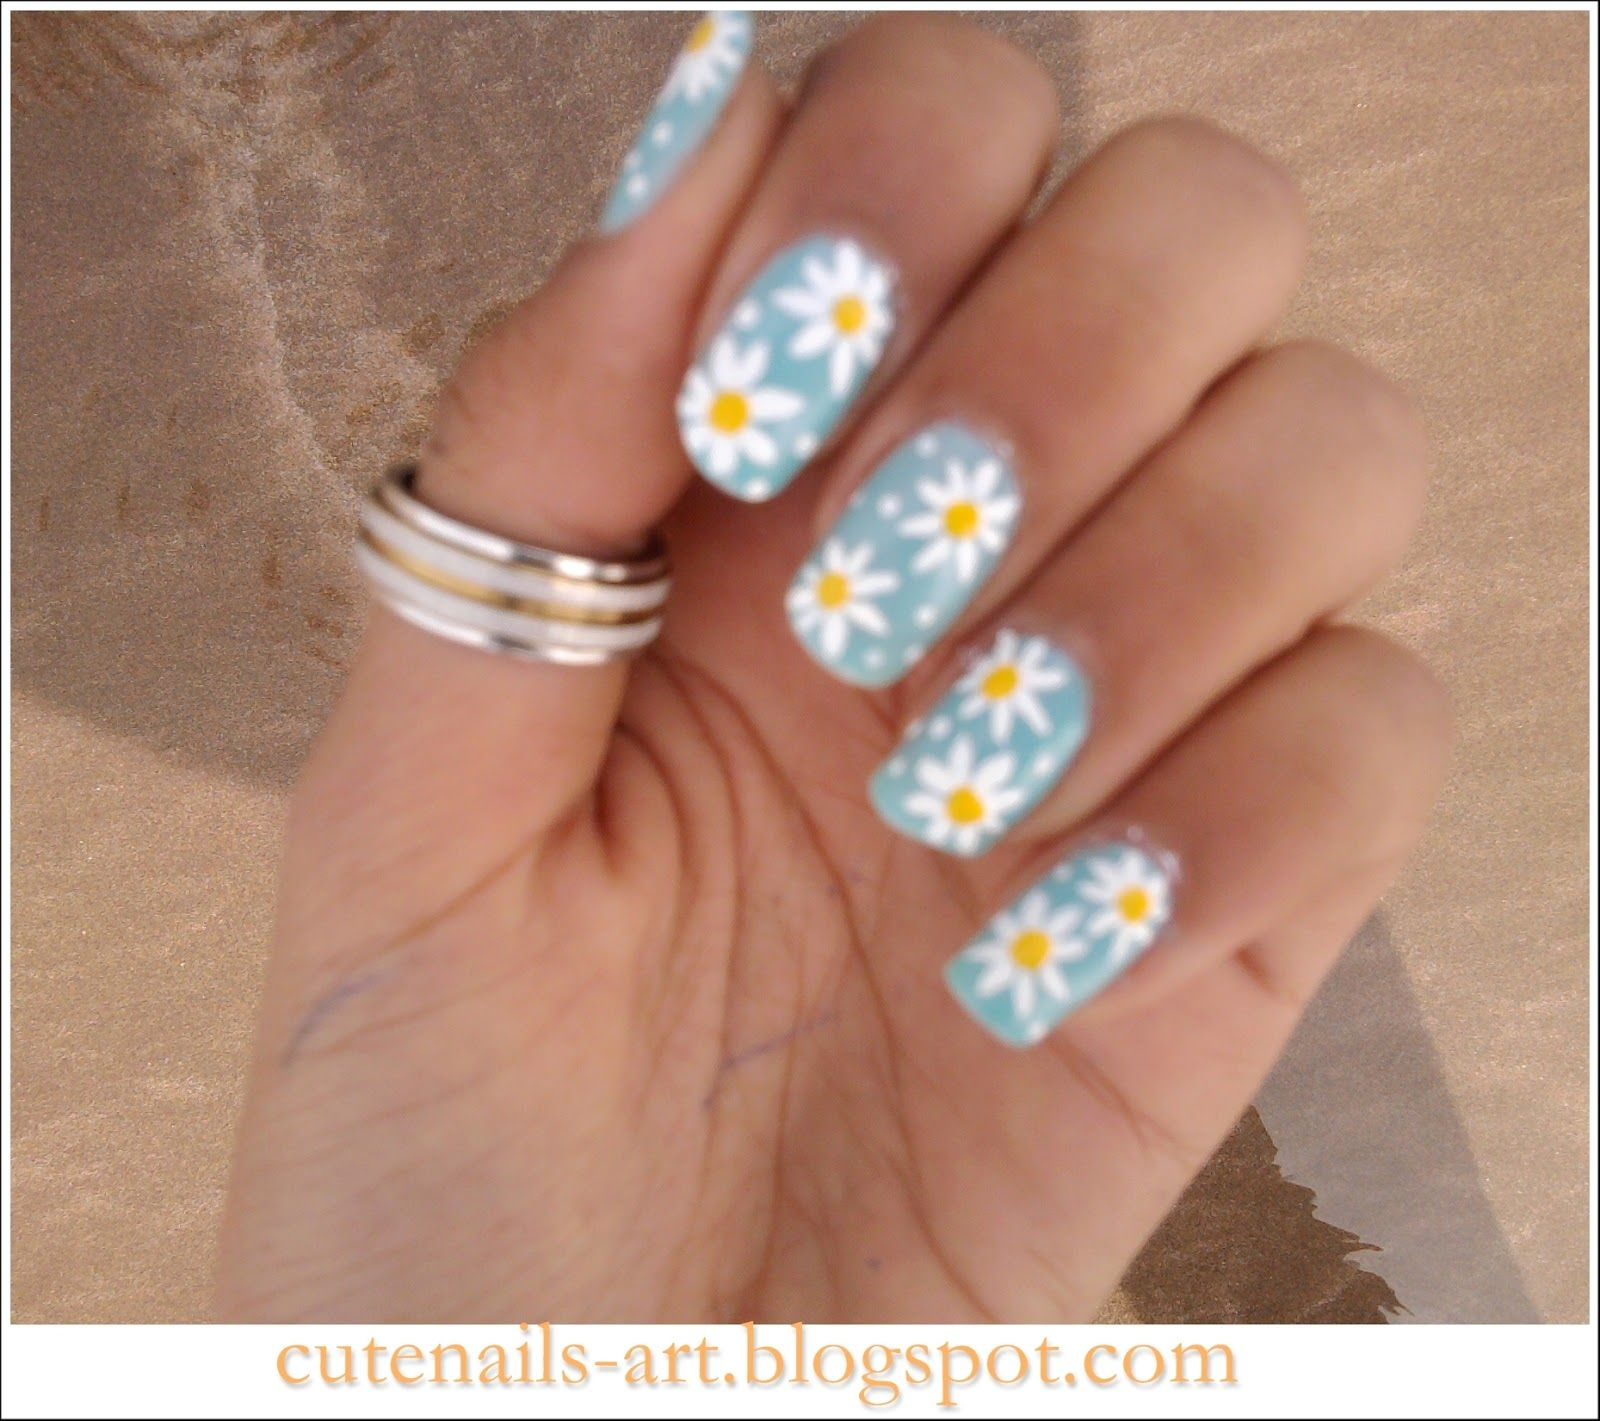 Sparkly Sunday | Daisy nail art, Daisy nails and Spring nails